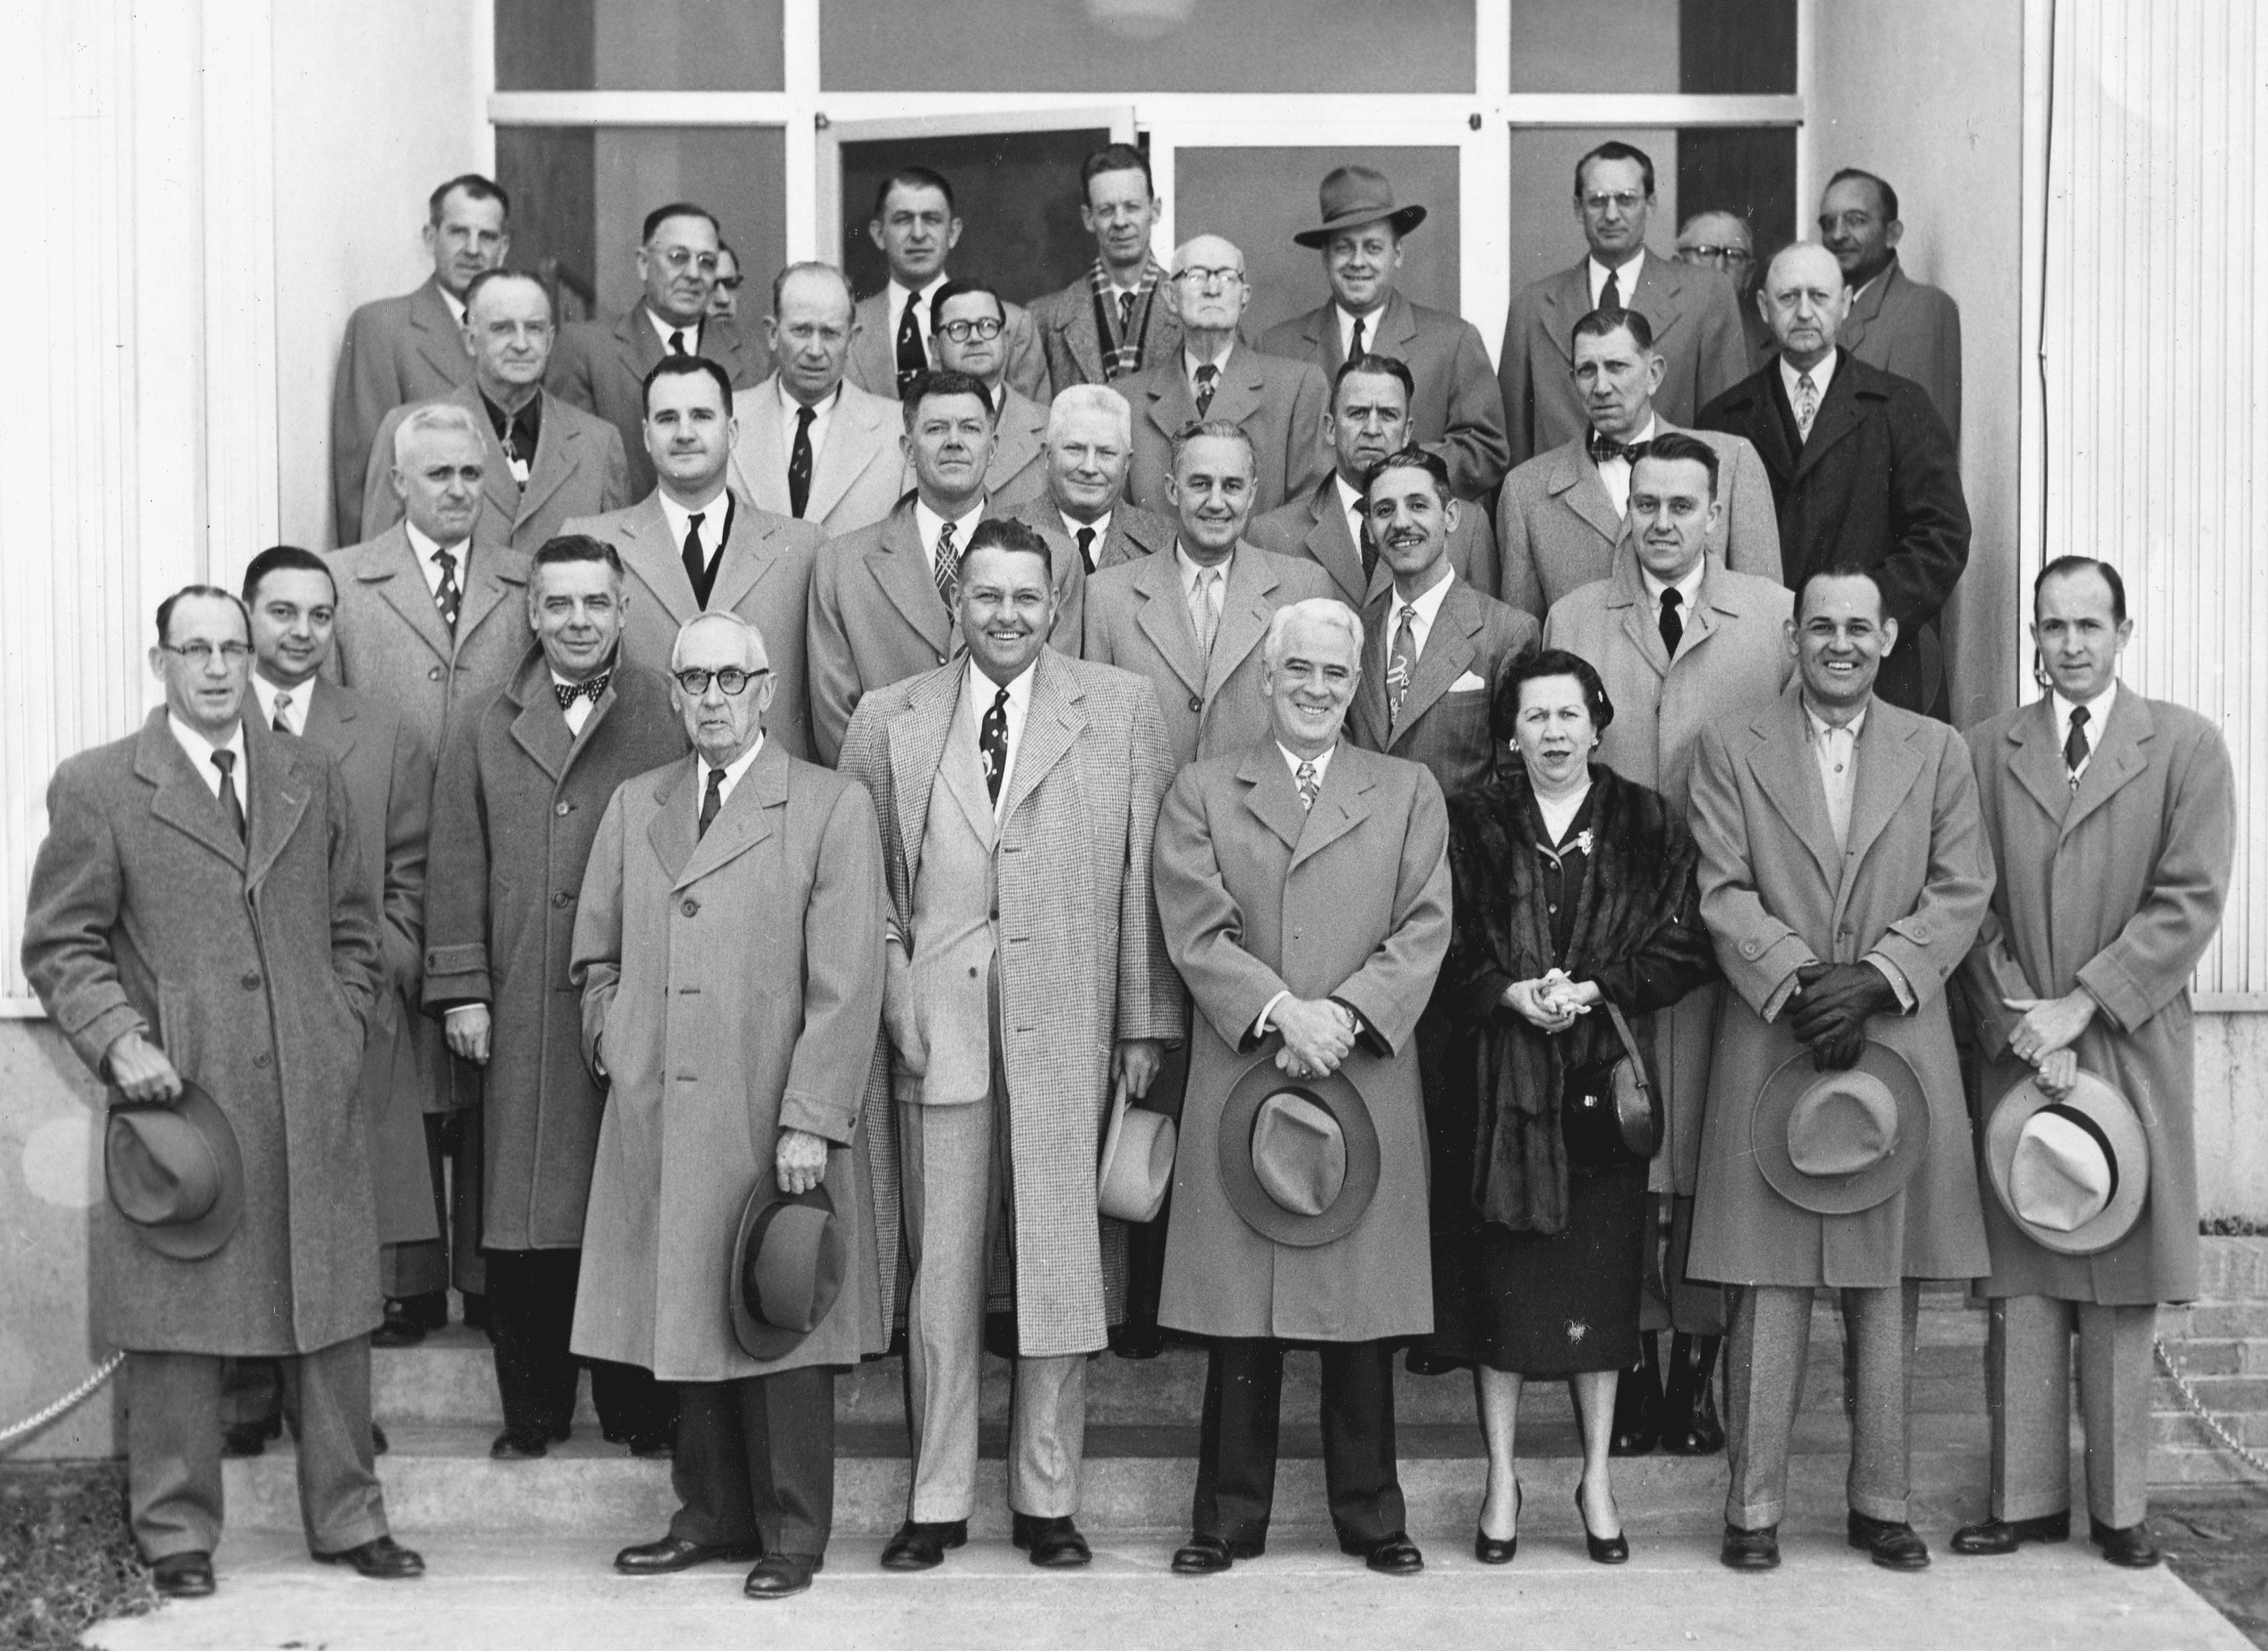 1953 – Newport's Business Leaders